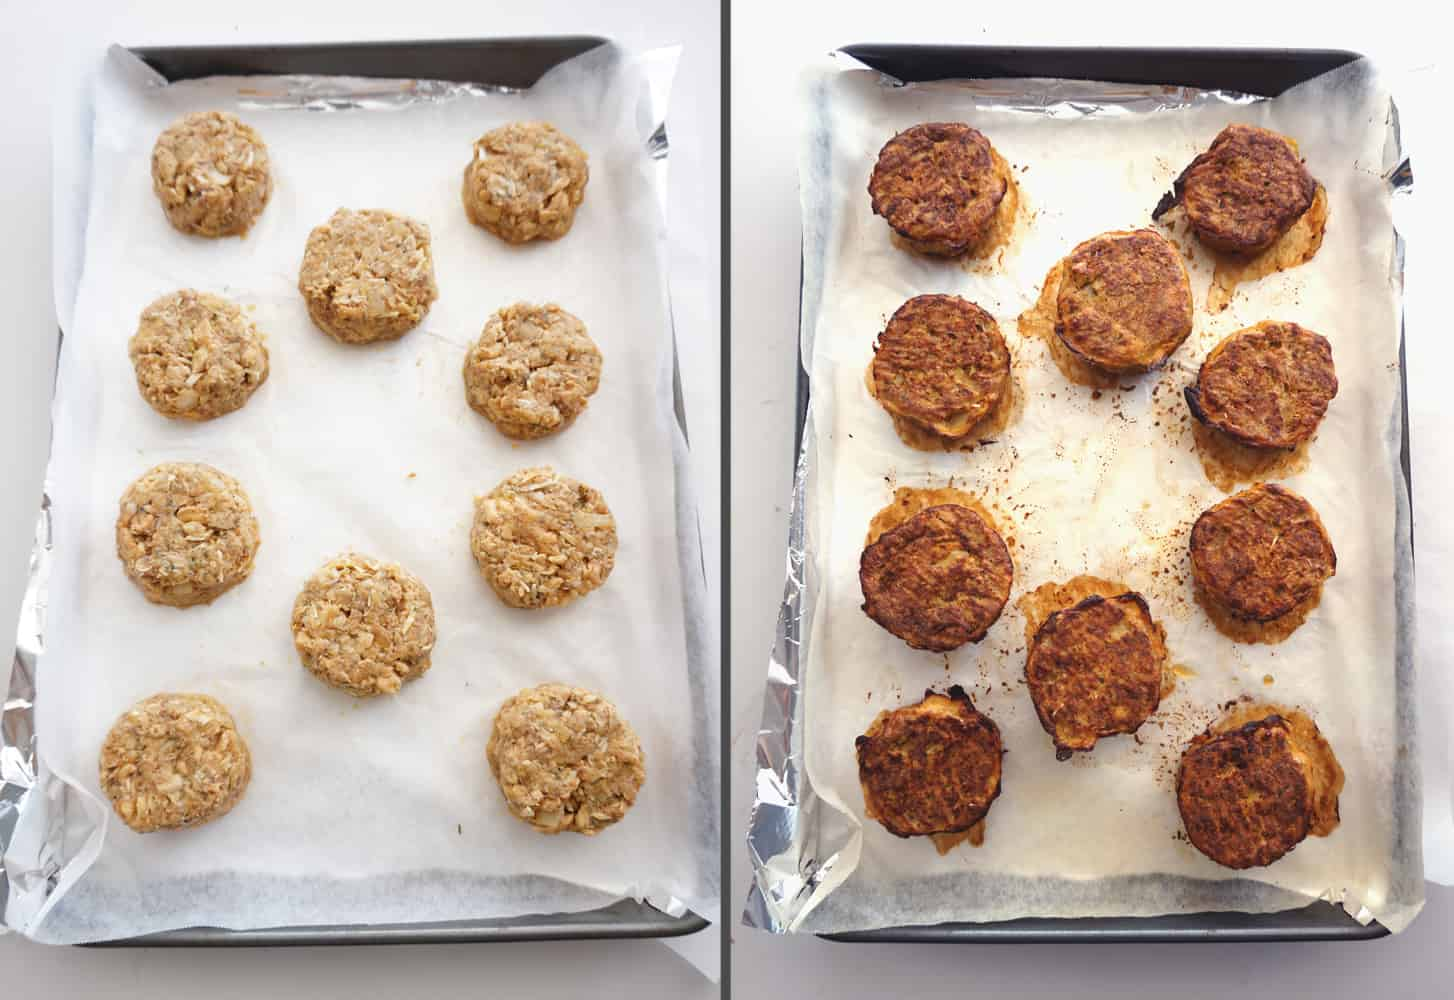 shaped salmon patties on a tray before and after baking